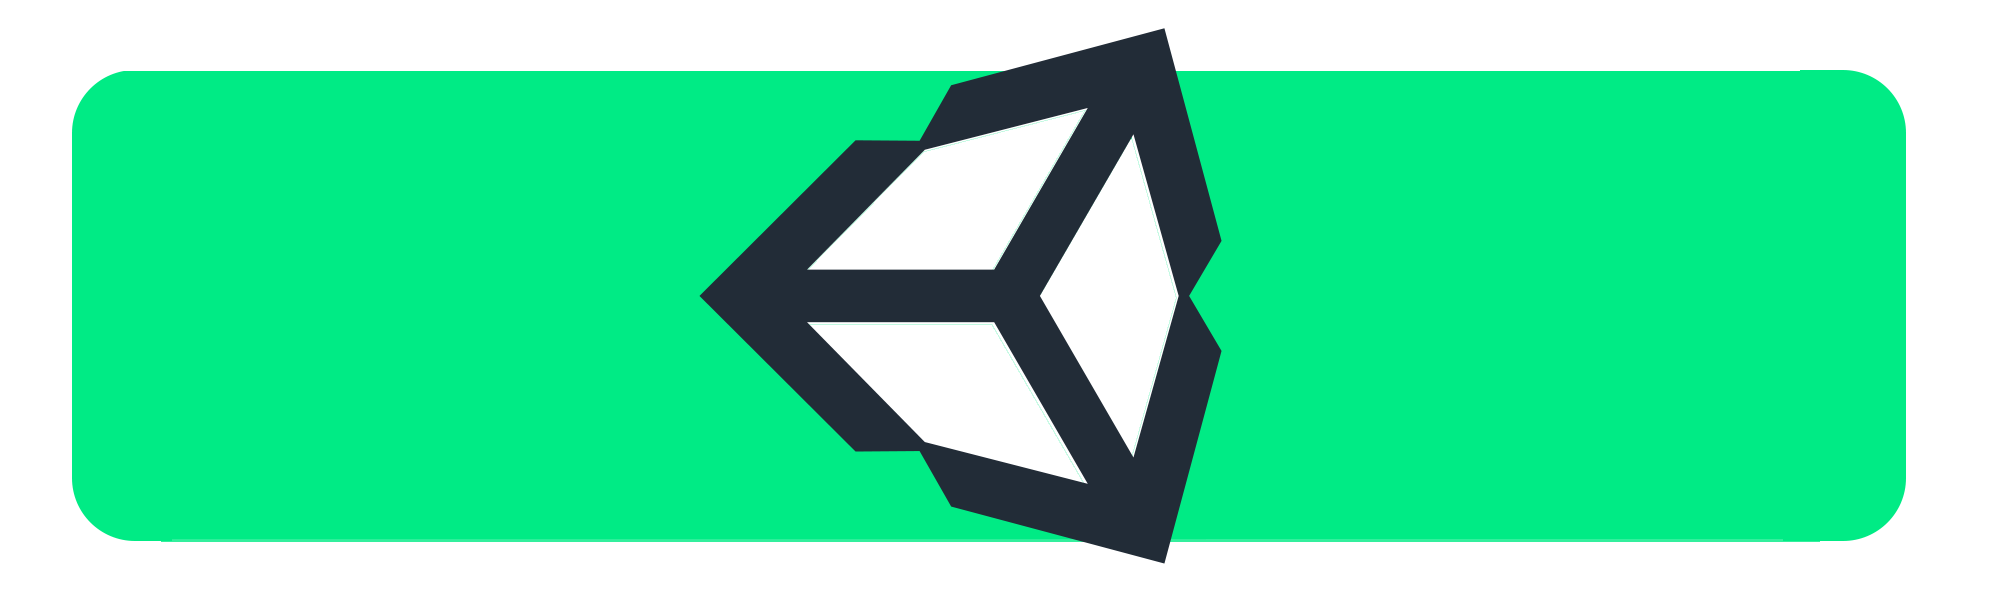 unity_image_banner.png